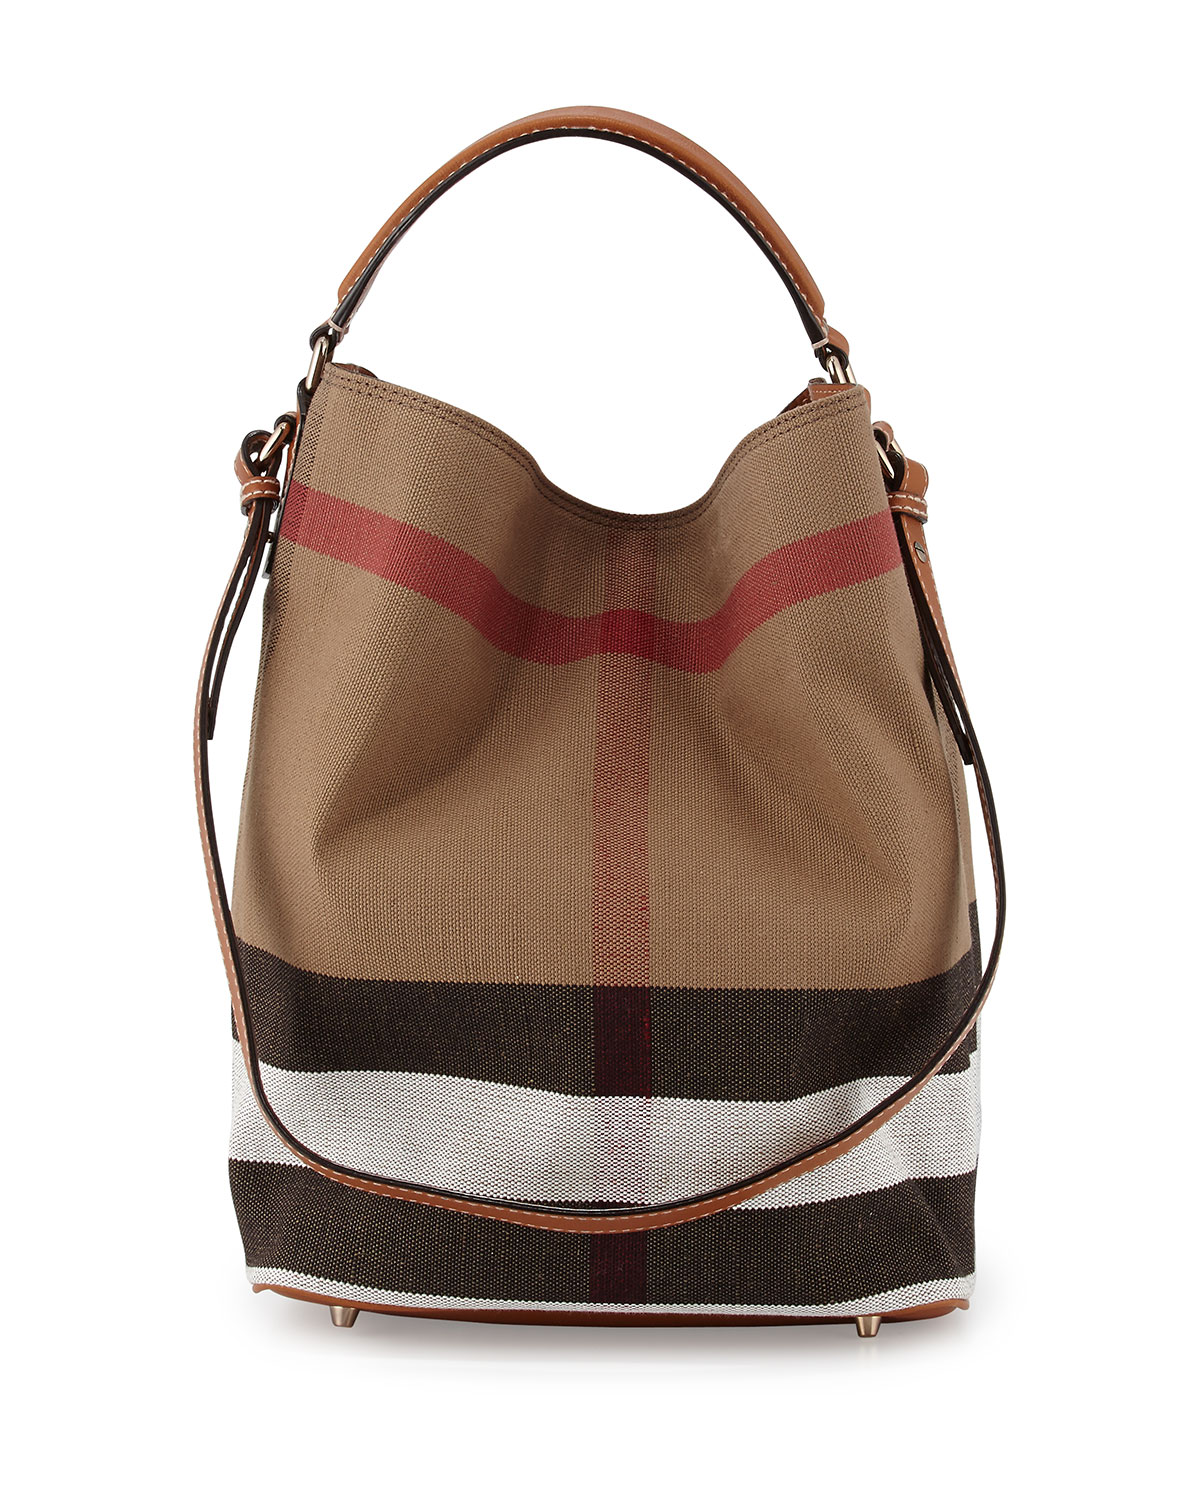 bbd06b1726b9 Burberry Ashby Medium Canvas Calfskin Hobo Bag